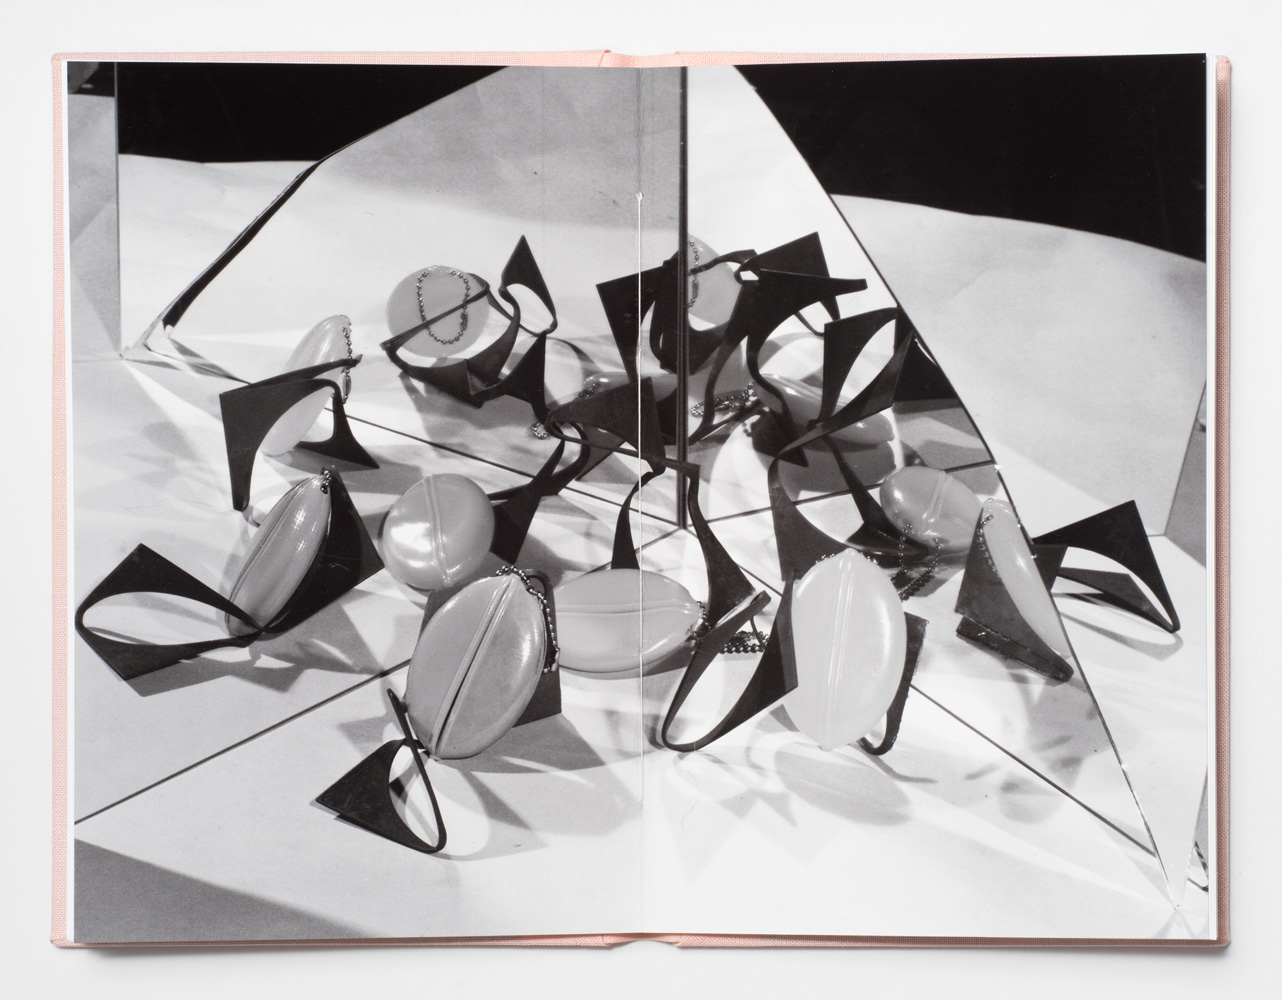 THIMGS (Artist Proof 3)(2014),7 5/16 x 4 13/16 x 7/16 inches,Printed by the artist and hand-bound by Biruta Auna